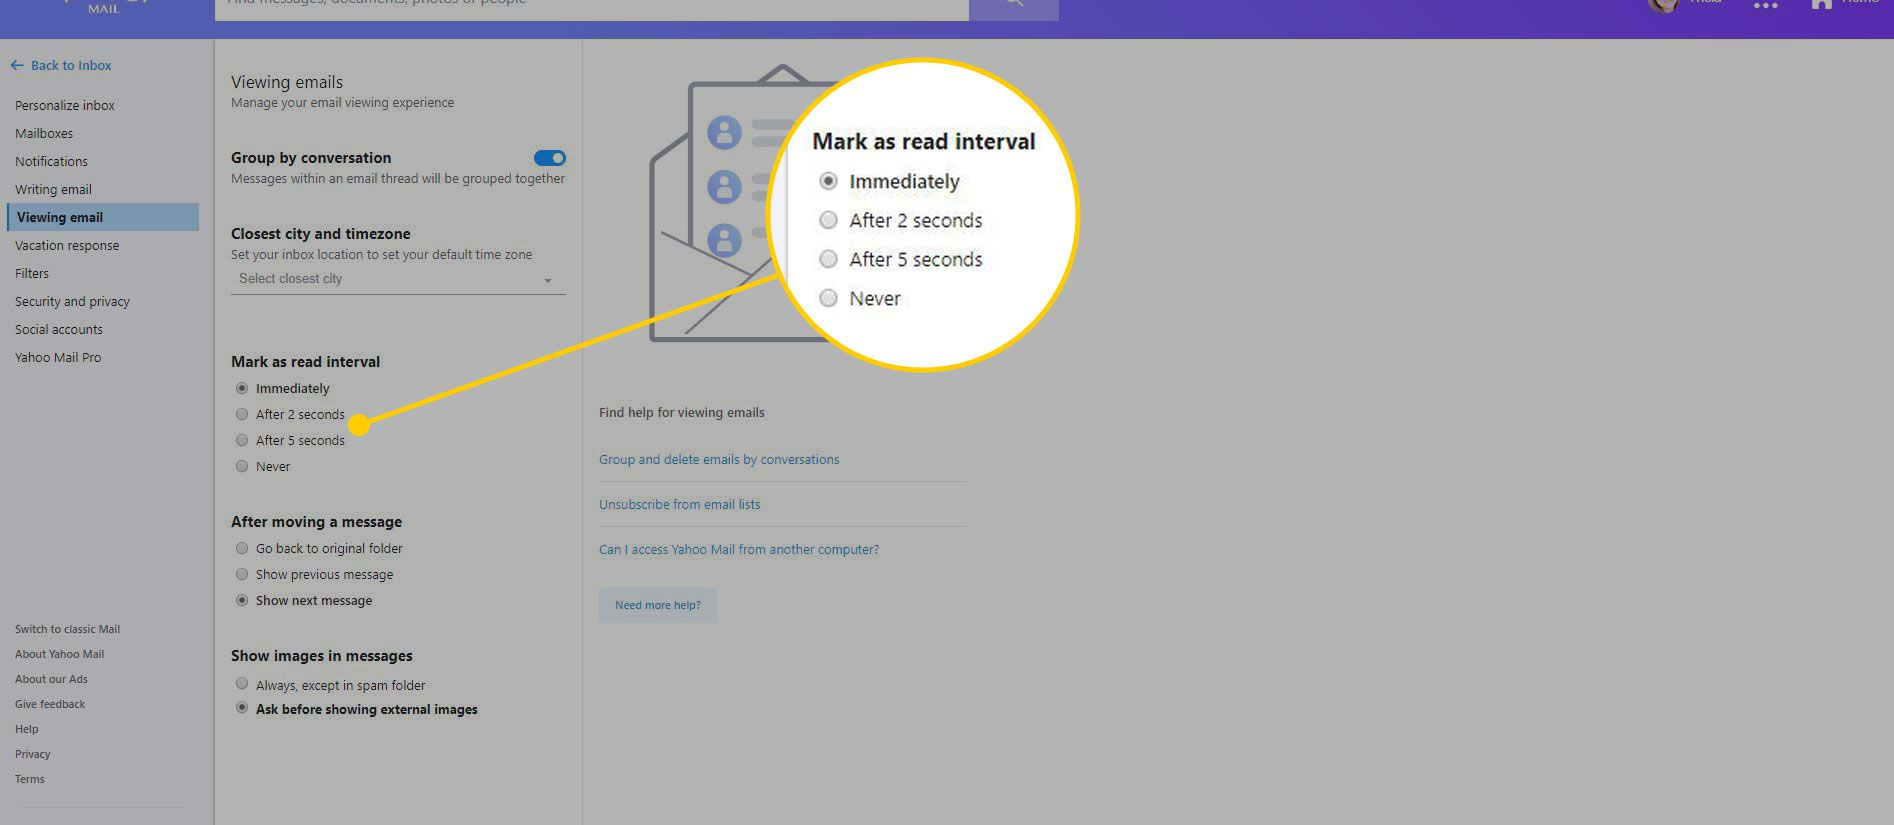 Yahoo Mail settings with the Mark as read interval options highlighted